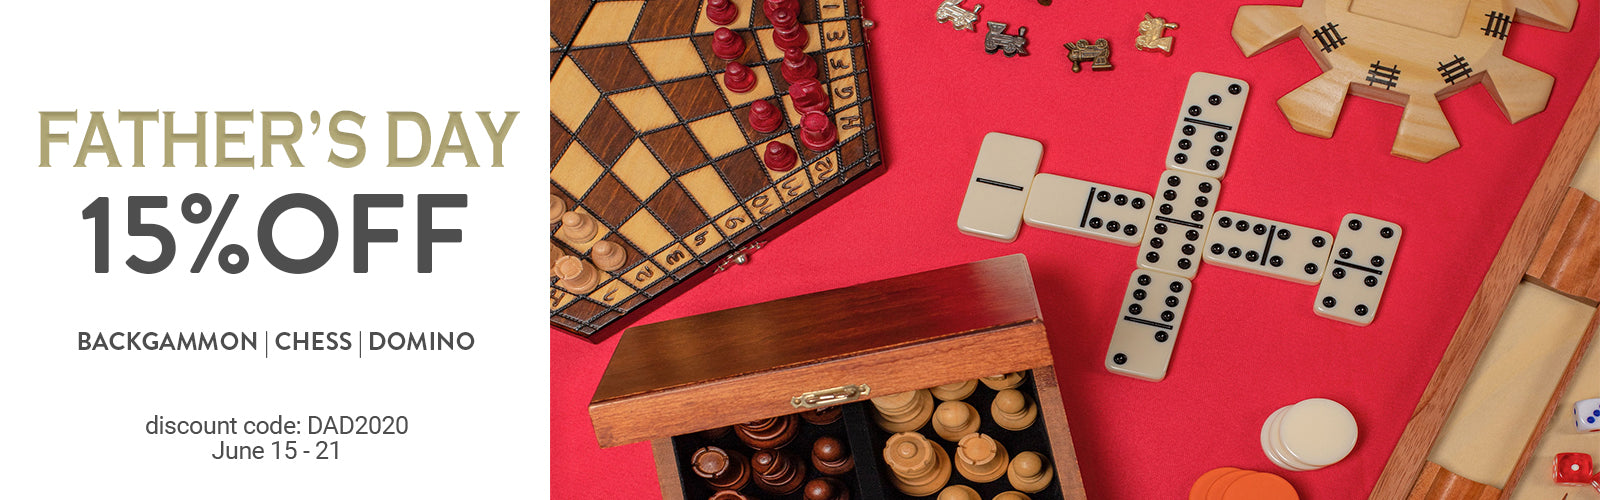 Father's Day Sale: 15% Off Backgammon, Chess and Dominos